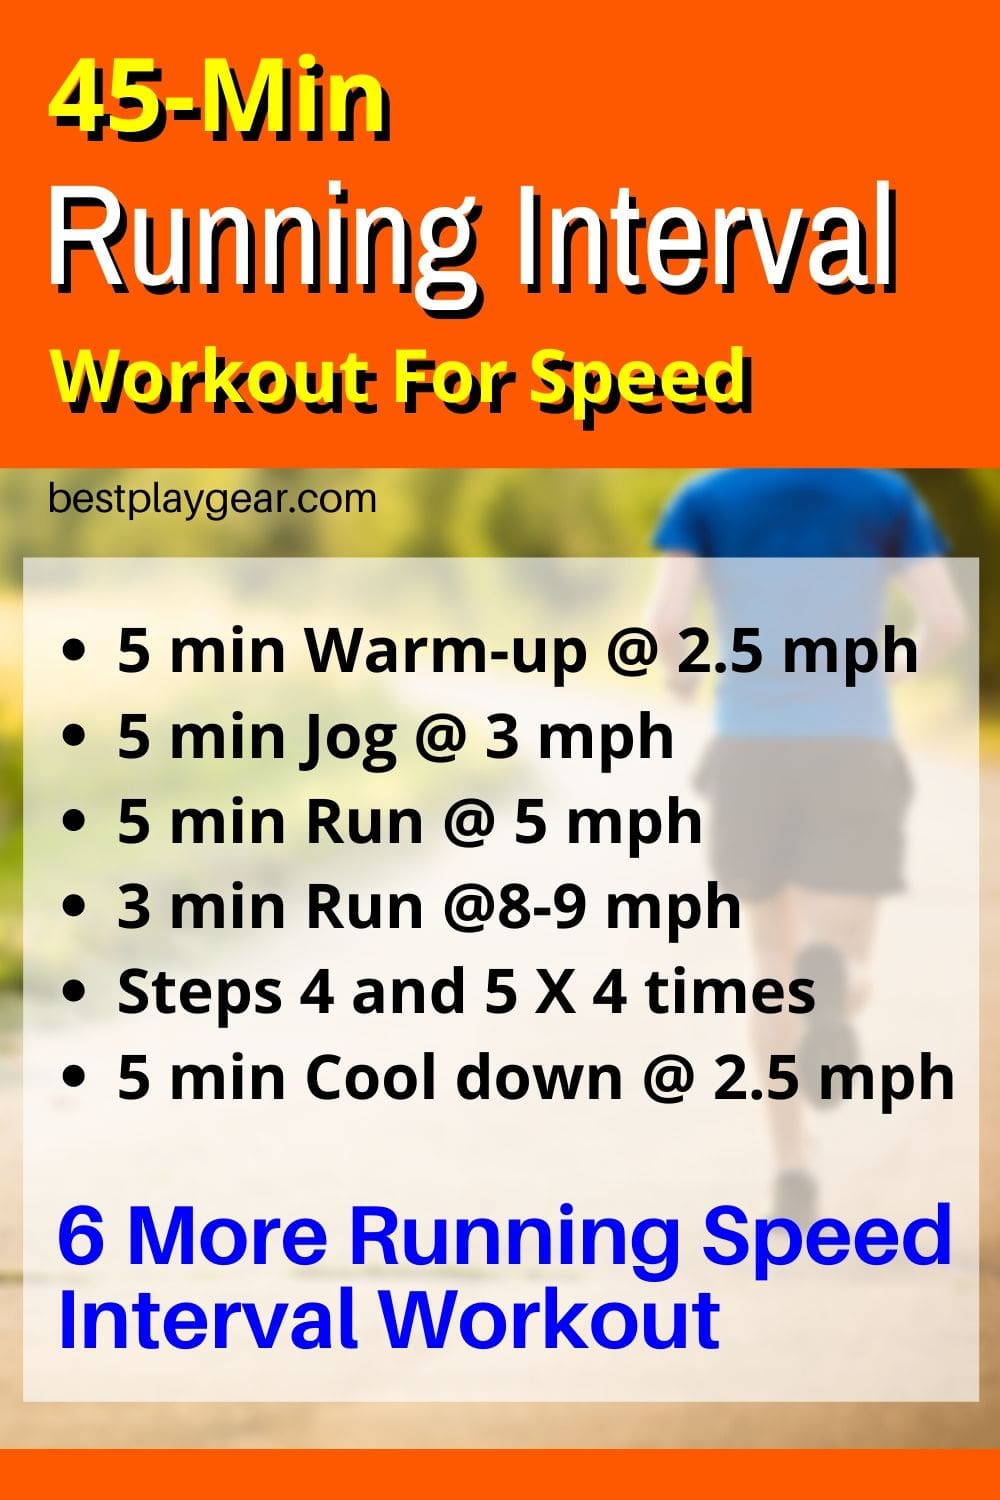 45-min Running interval workout for runners at any level. This is an outdoor running workout and doesn't use treadmill intervals. Have a cardio blast using this running interval training.